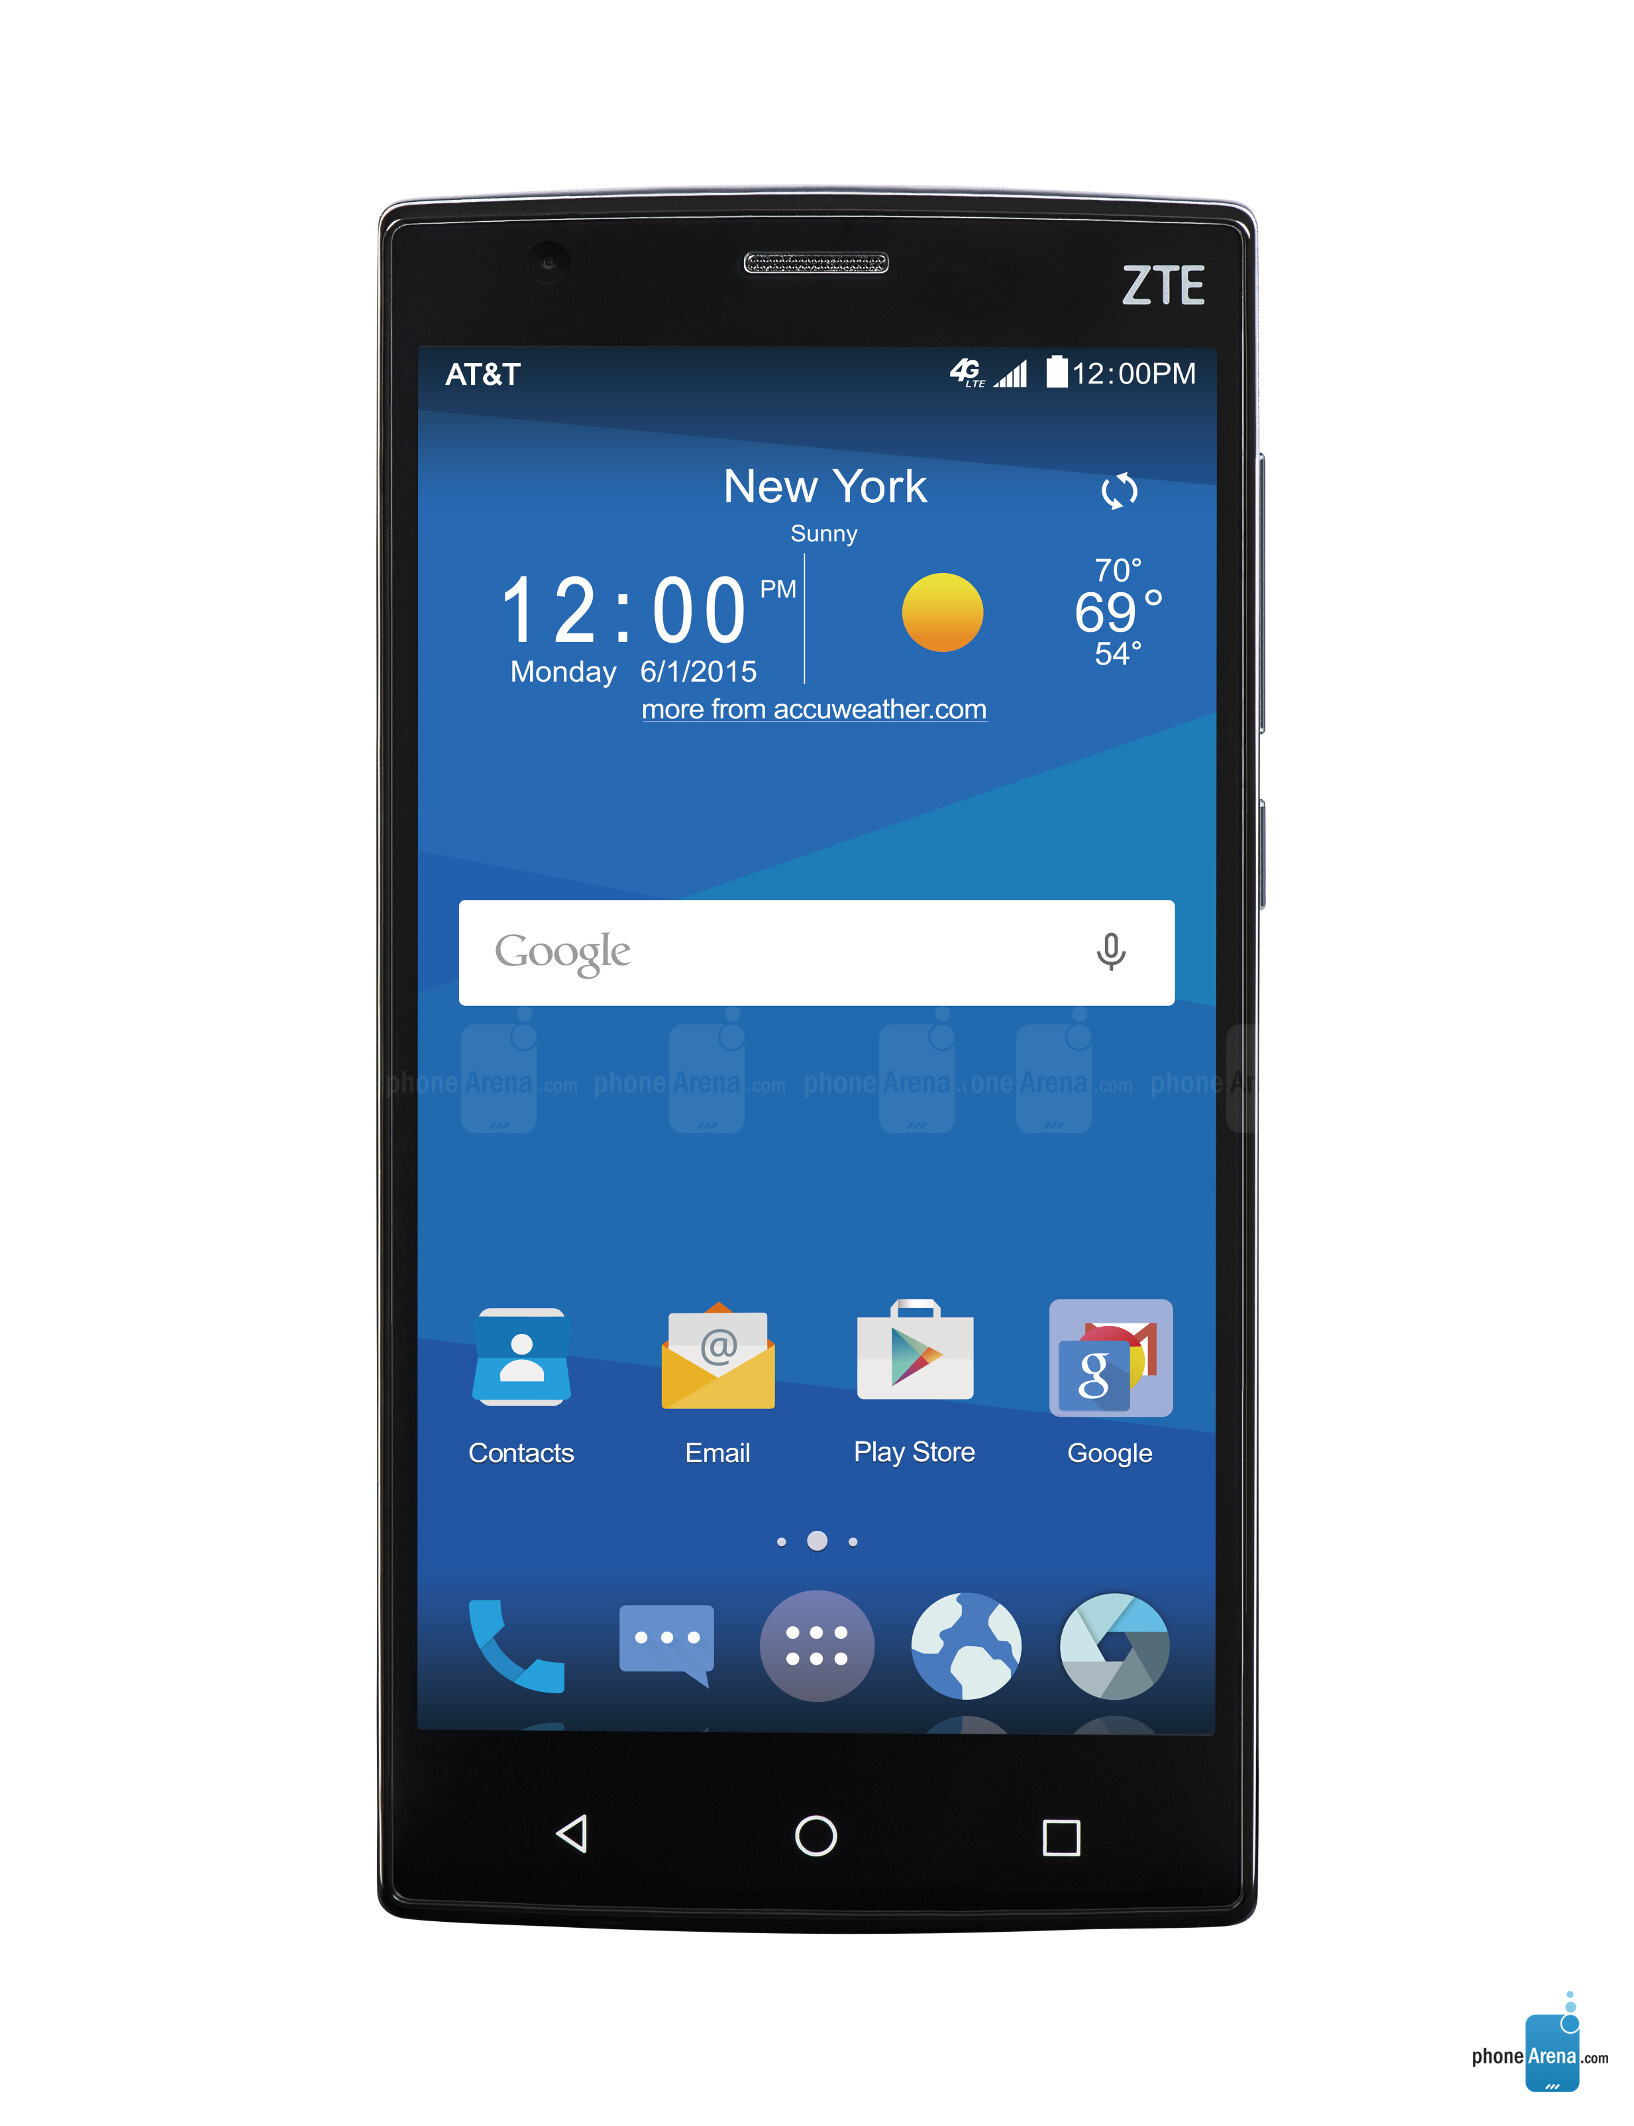 zte zmax 2 firmware update after inside while